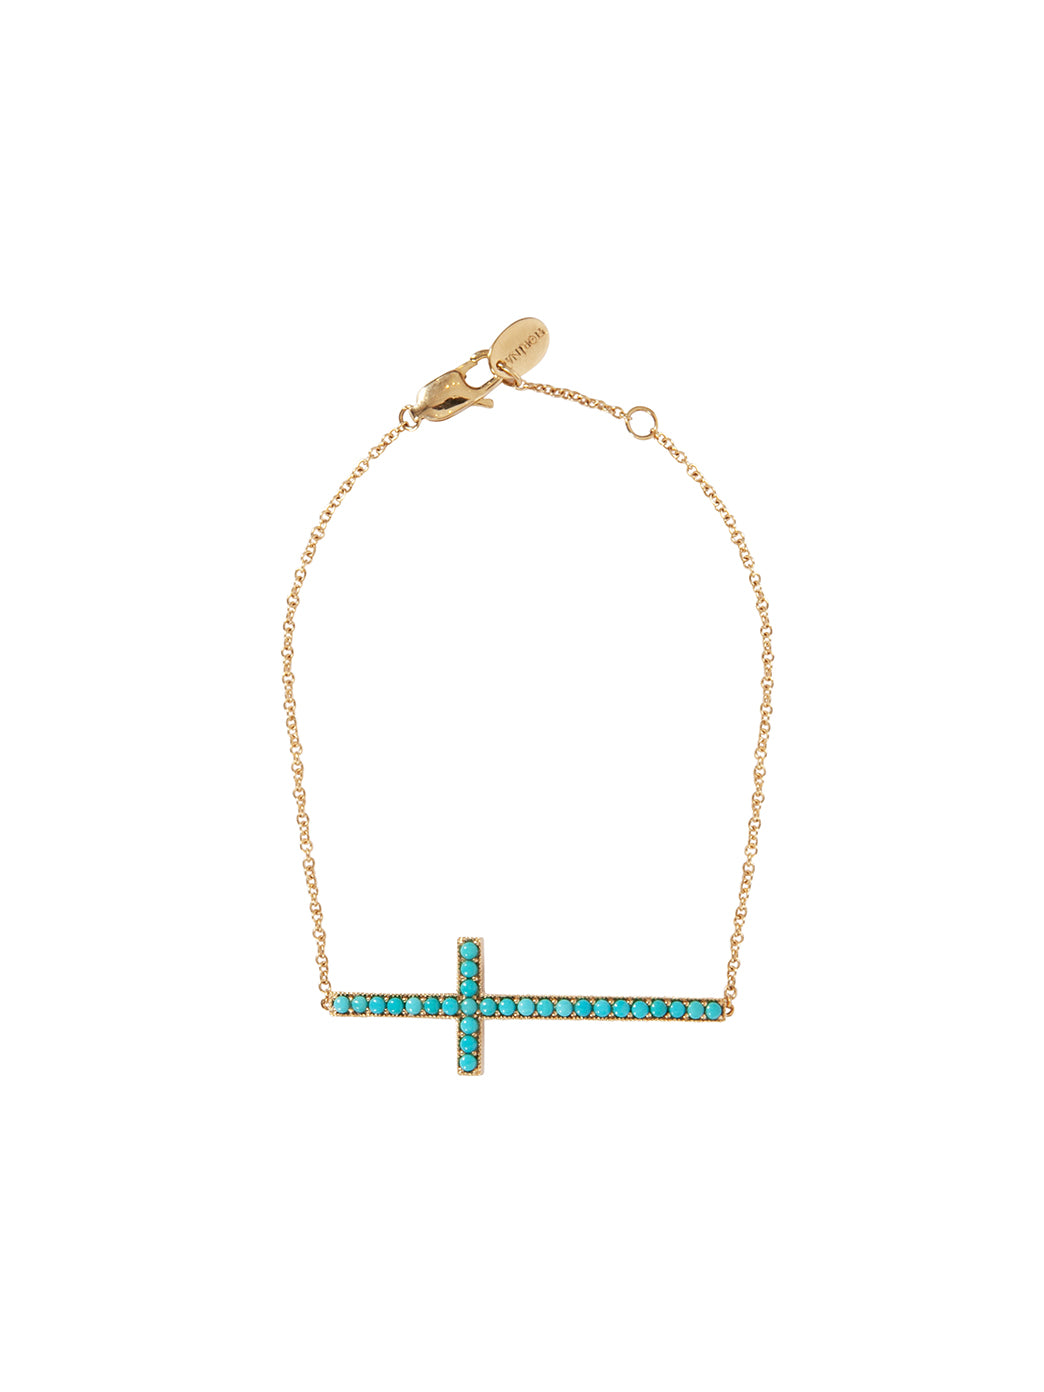 Fiorina Jewellery Gold Turquoise Cross Bracelet